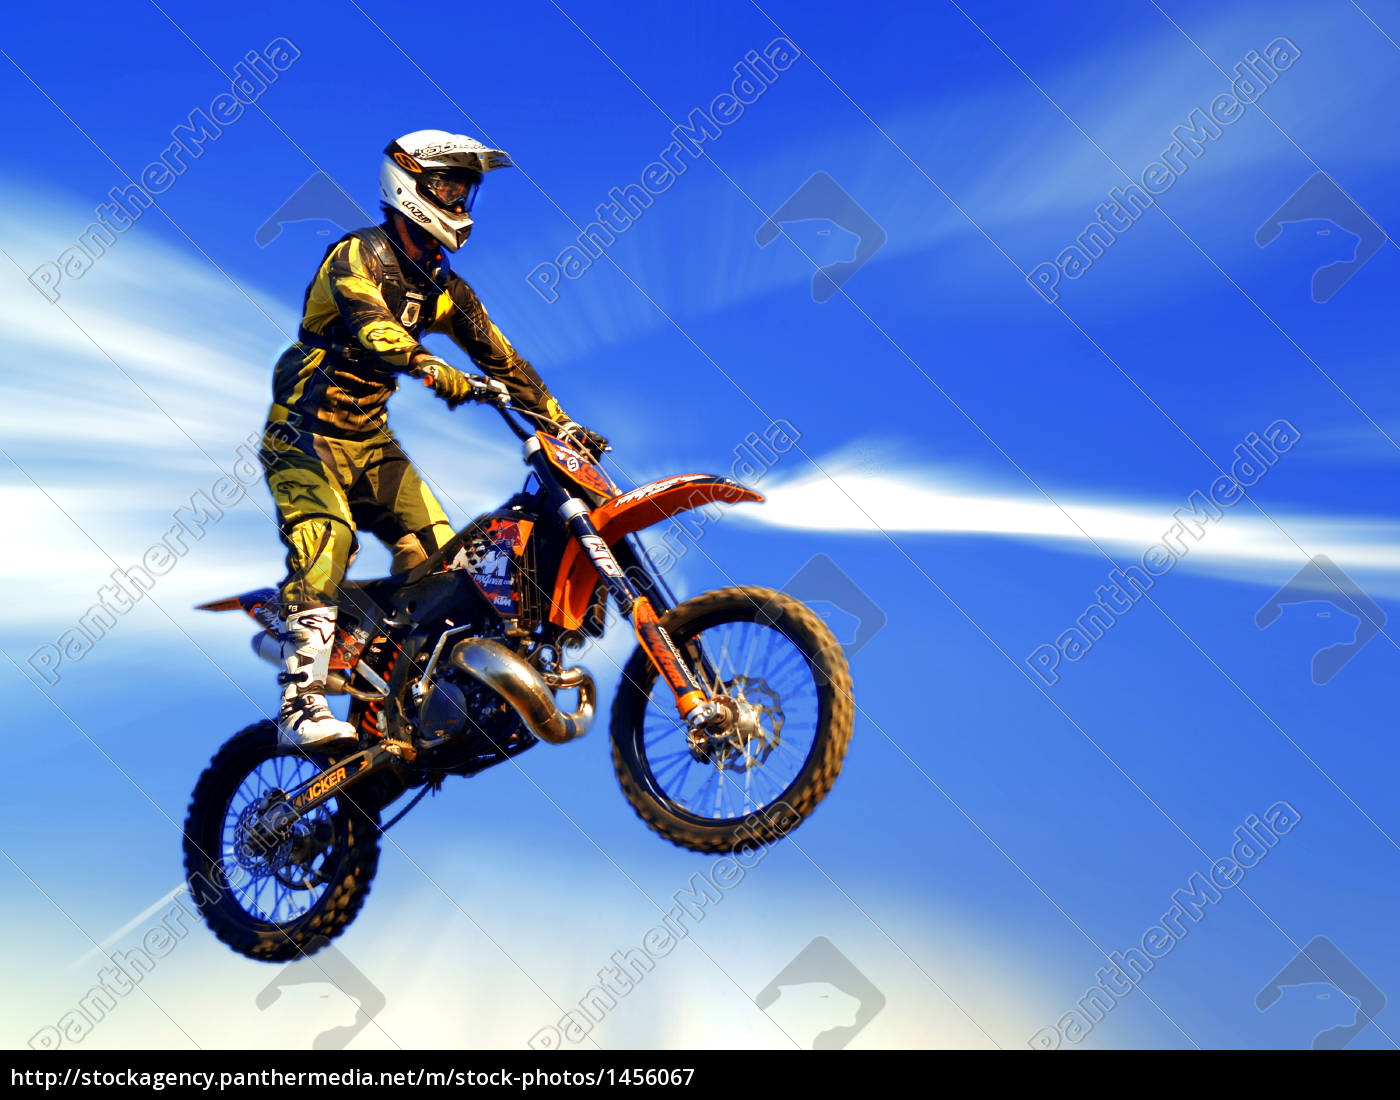 freestyle, motocross - 1456067